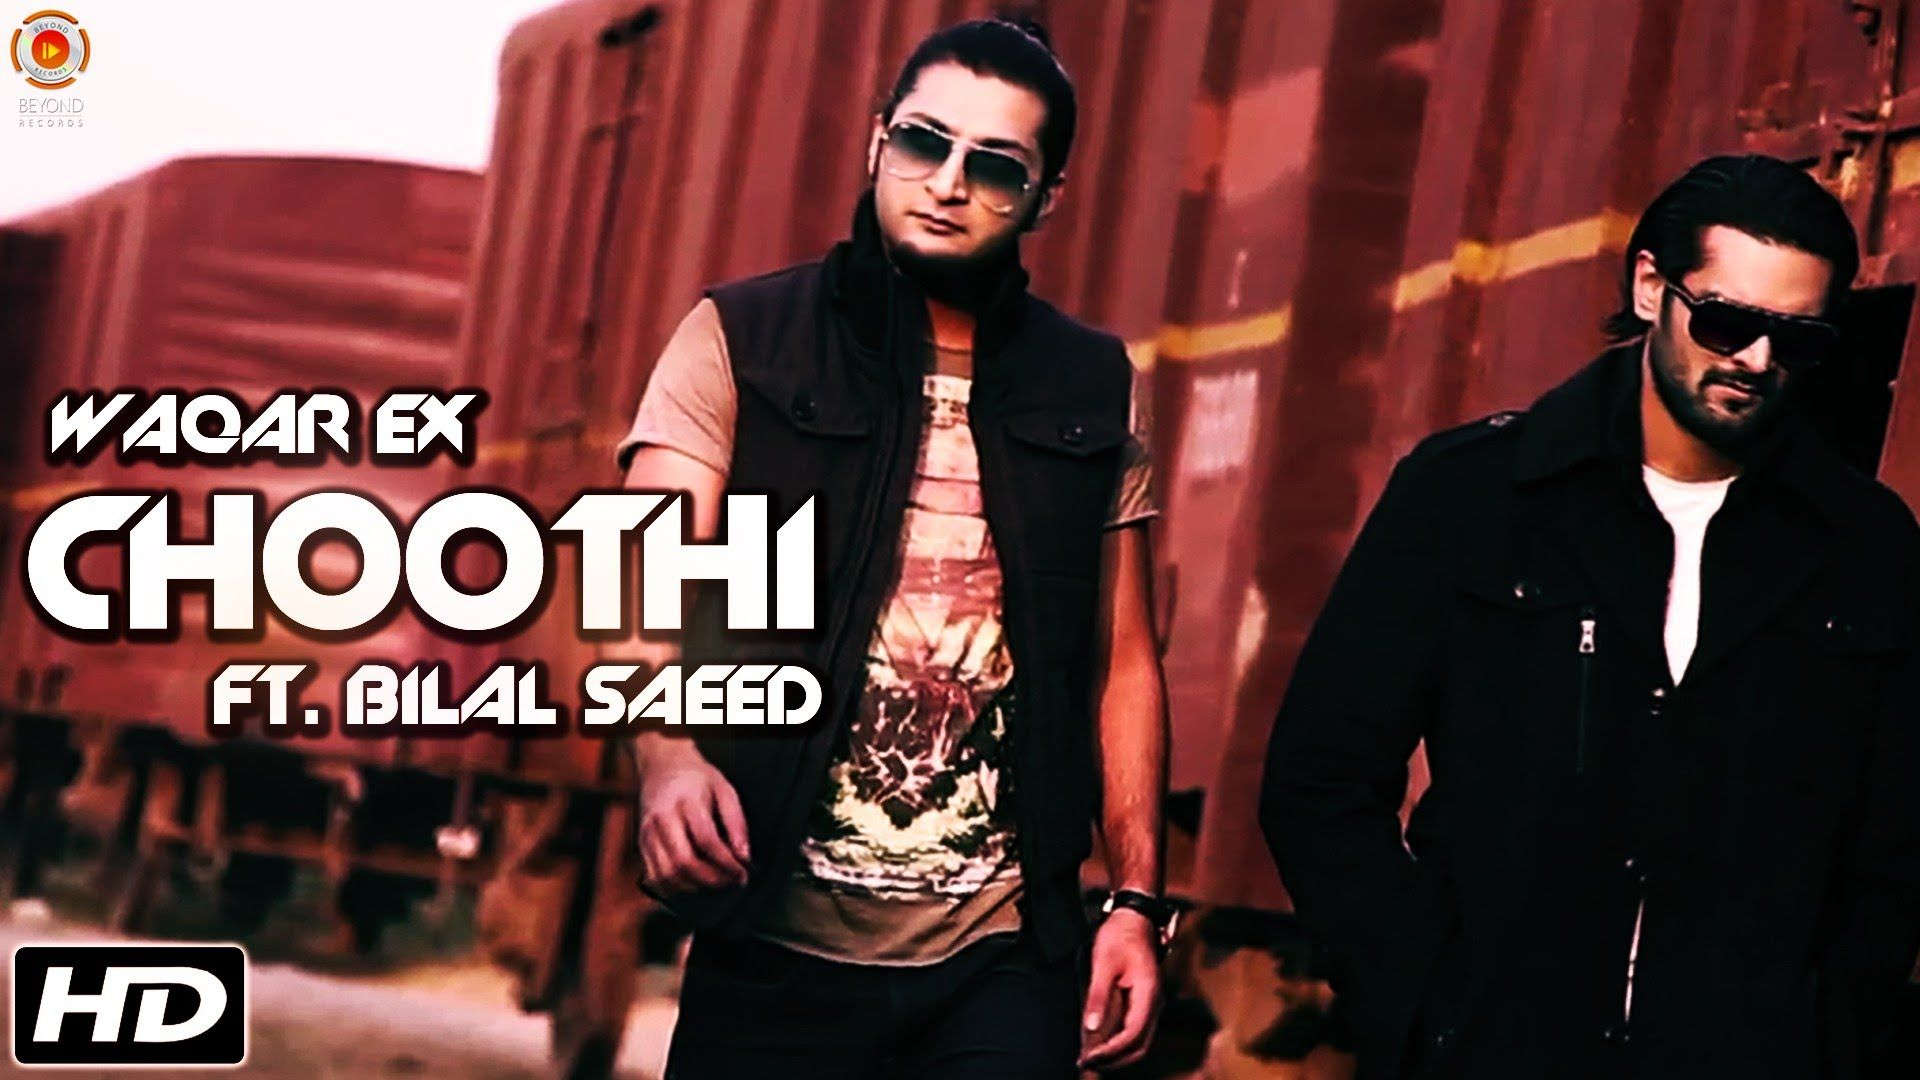 Bilal Saeed With His Latest Song Choothi Ft Waqar Ex New Punjabi Songs 2015 Music And Rap By Written